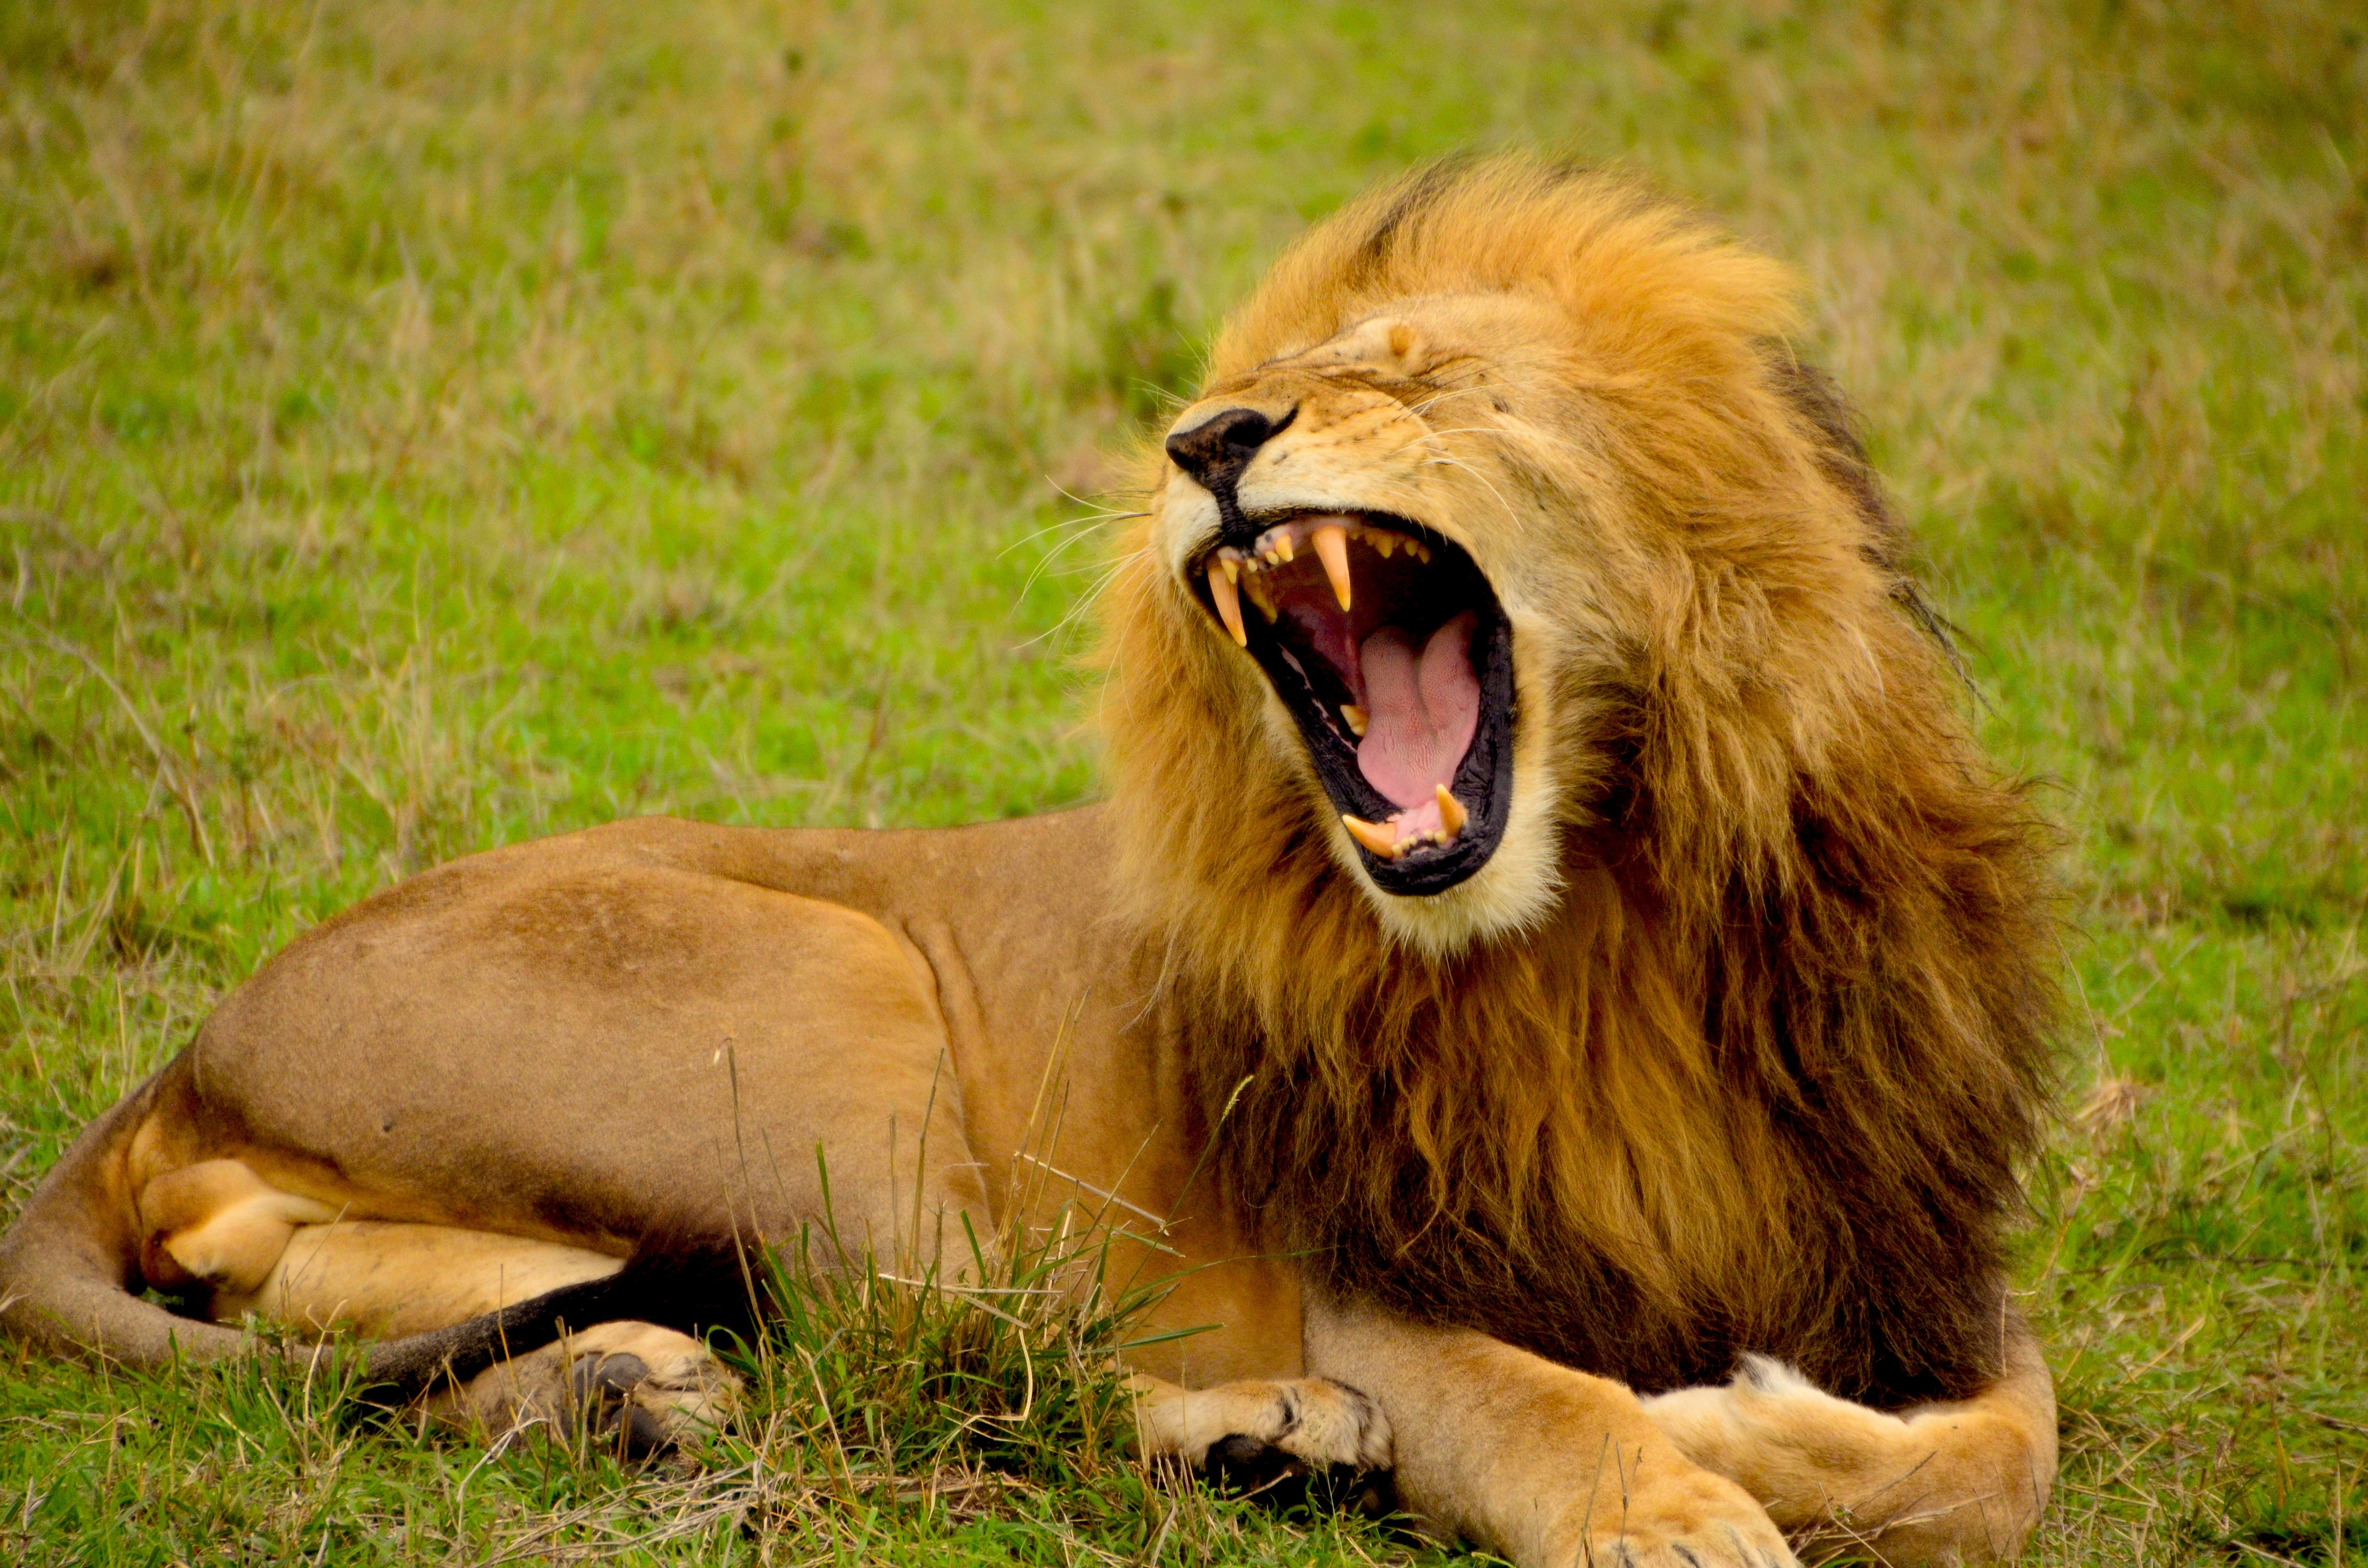 A male lion roaring while lying on grass